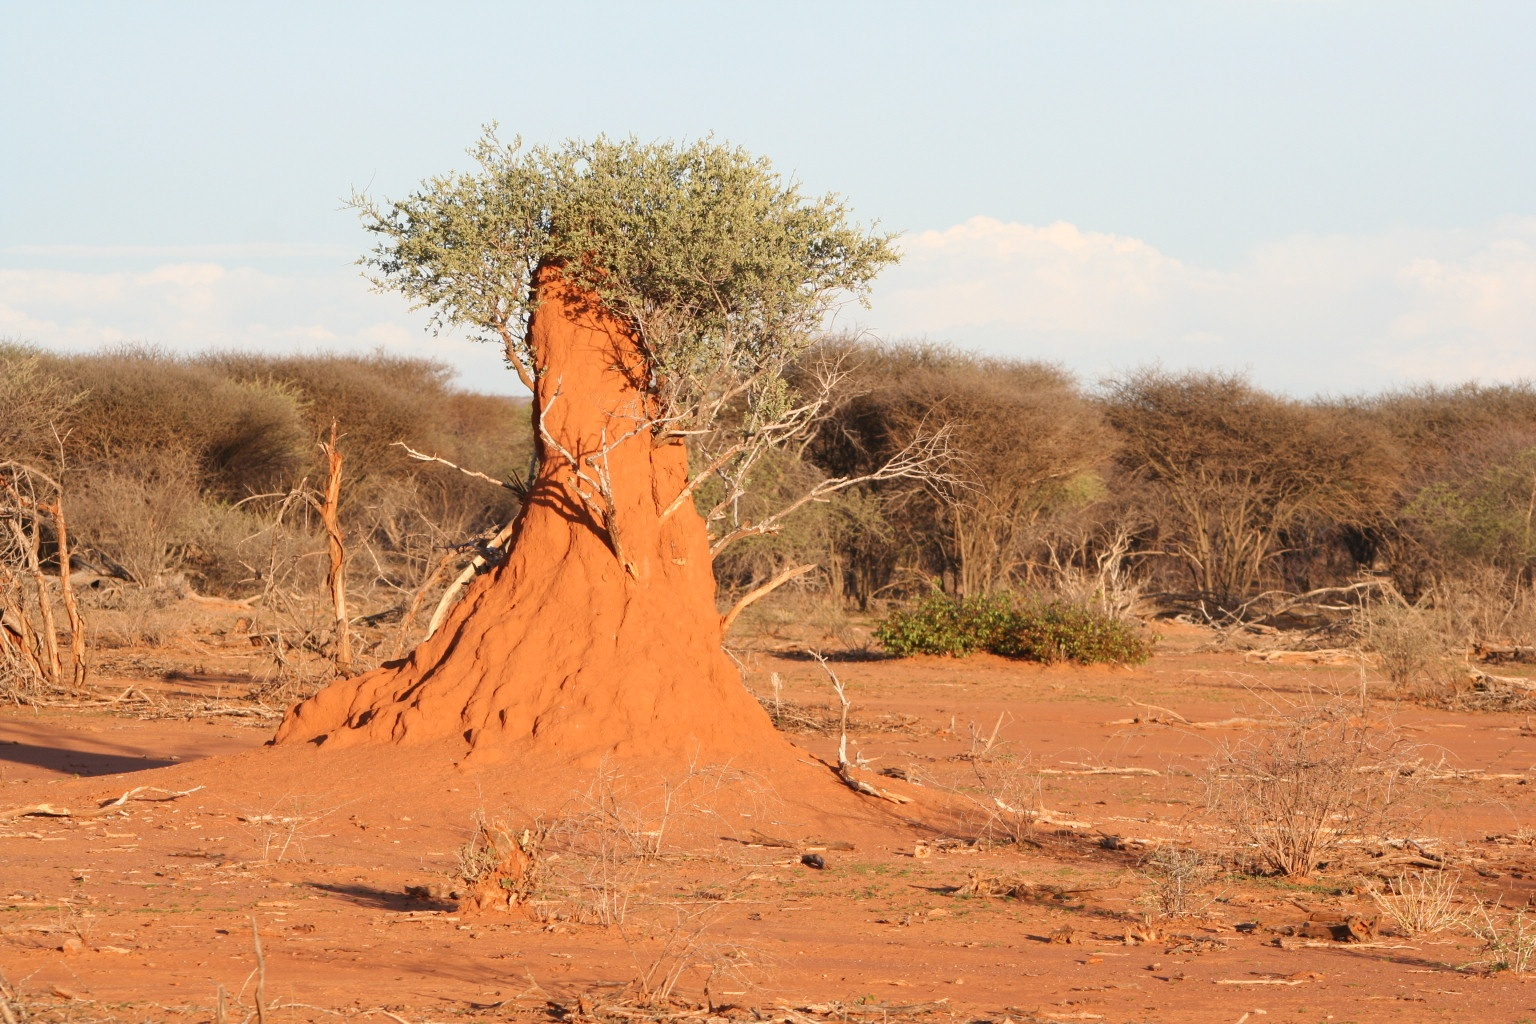 Termites (this one 3 m high)